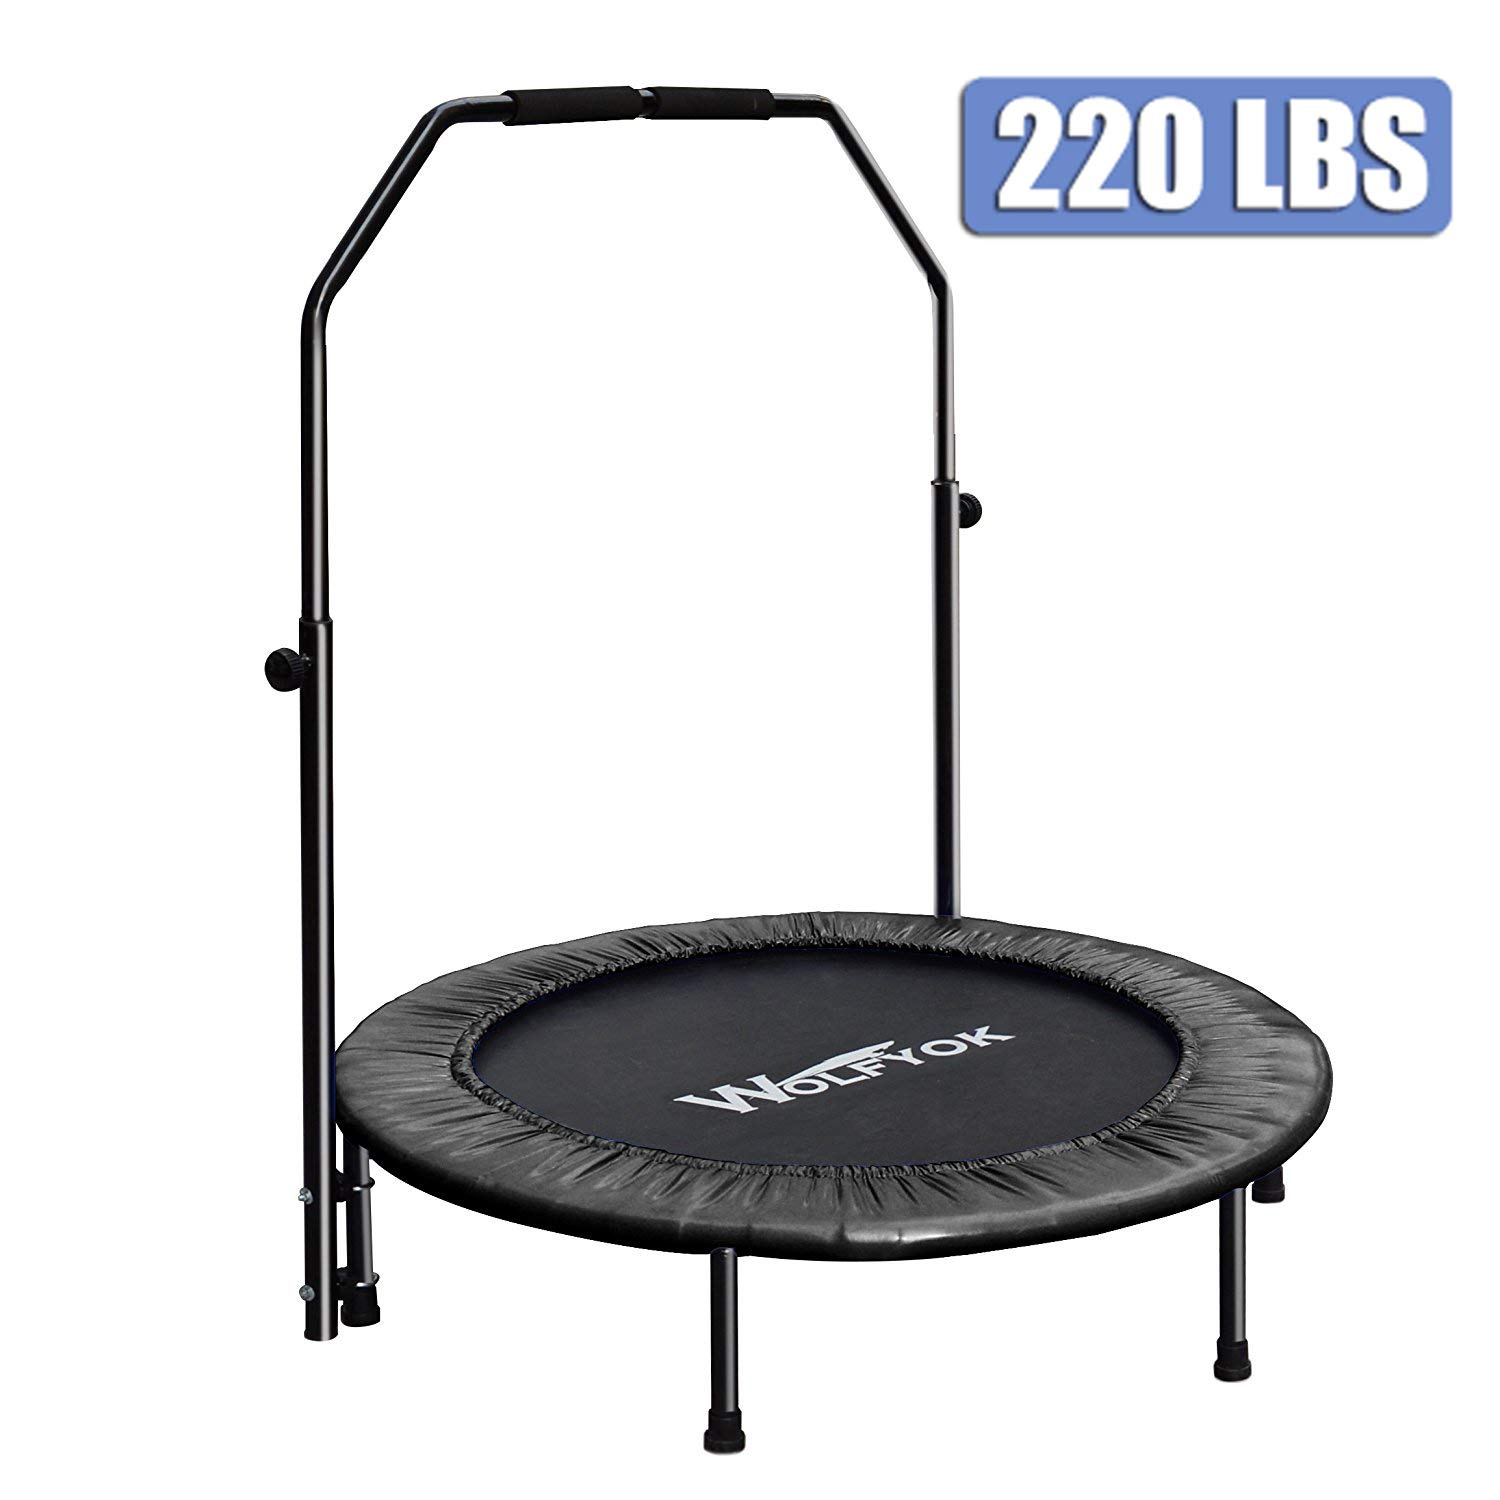 Wolfyok Exercise Trampoline with Safety Pad Adjustable Handle Bar Portable & Foldable Rebounder for Adults Kids Body Fitness Training Workout Max Load 220 lbs Black by Wolfyok